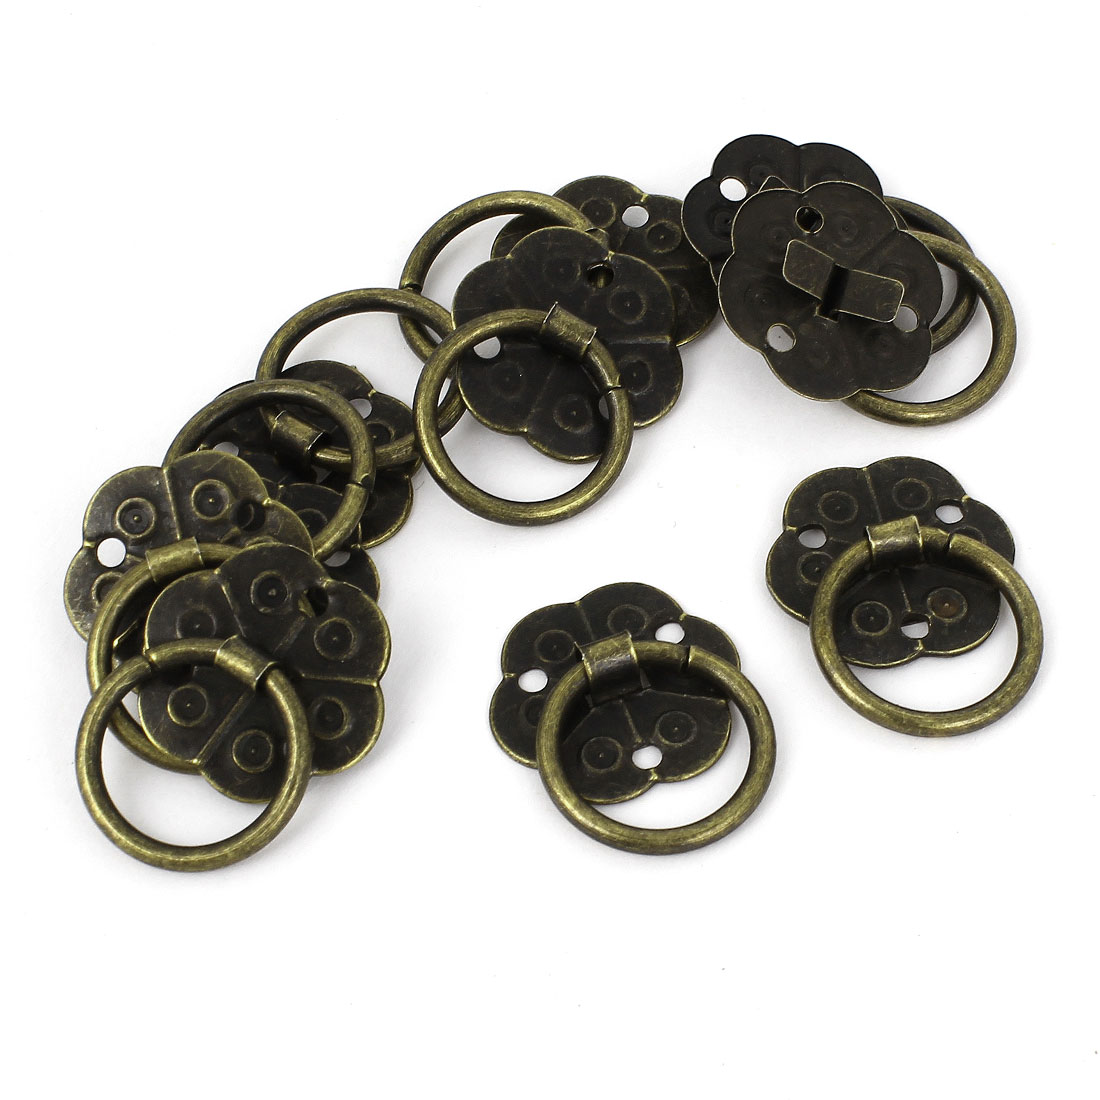 10pcs Home Jewelry Box Cabinet Door Pull Handle Ring Bronze Tone 18mm Dia